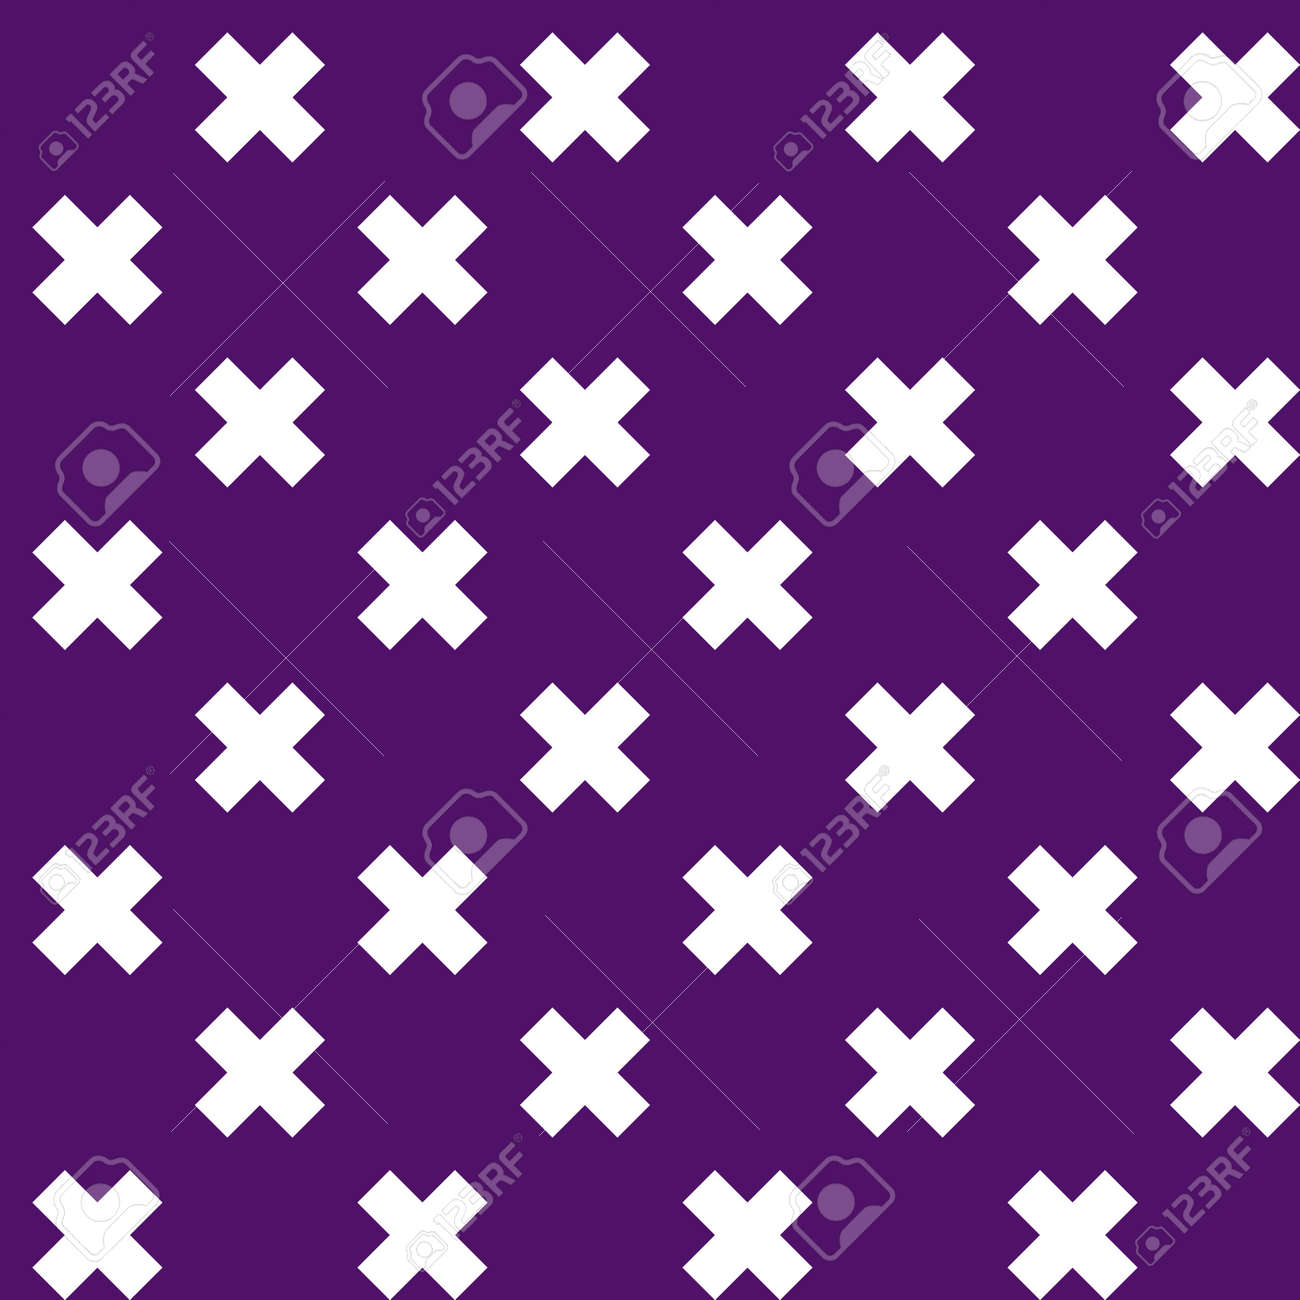 Cross, plus sign geometric seamlessly repeatable pattern, background, texture. Colorful, vivid, vibrant background illustration. Vector illustration - 168460356